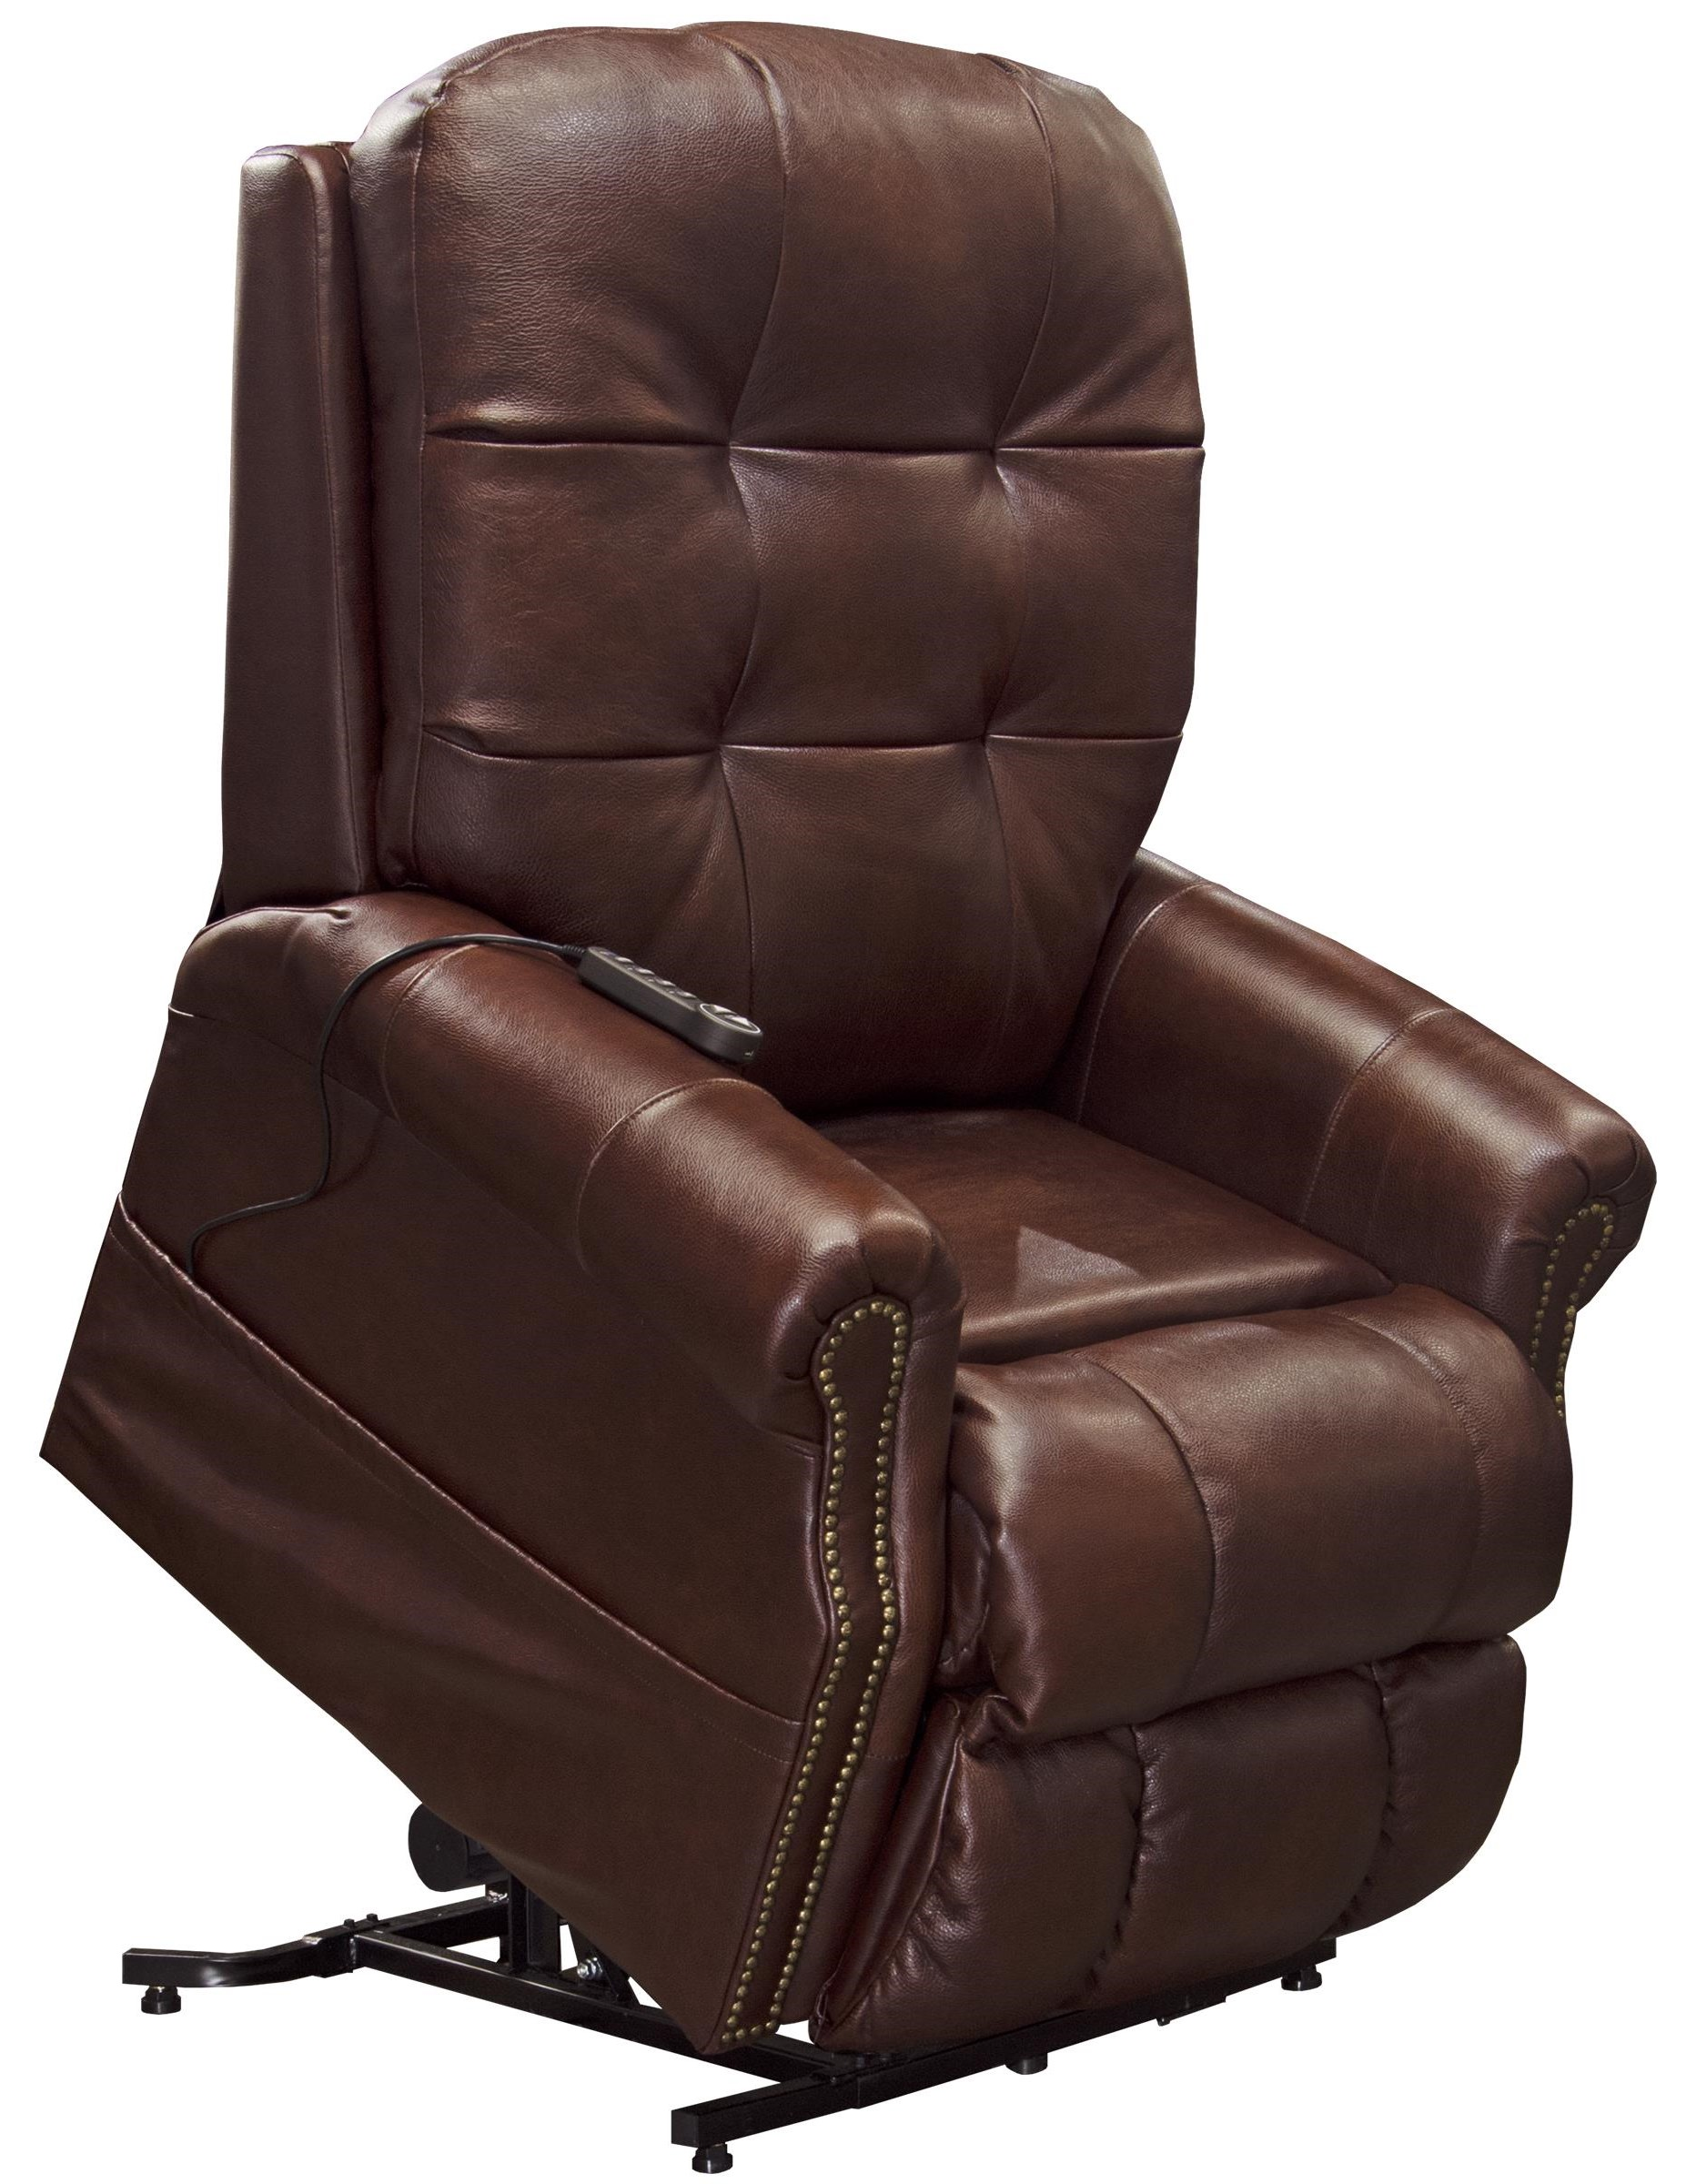 Laether Power Lift Recliner